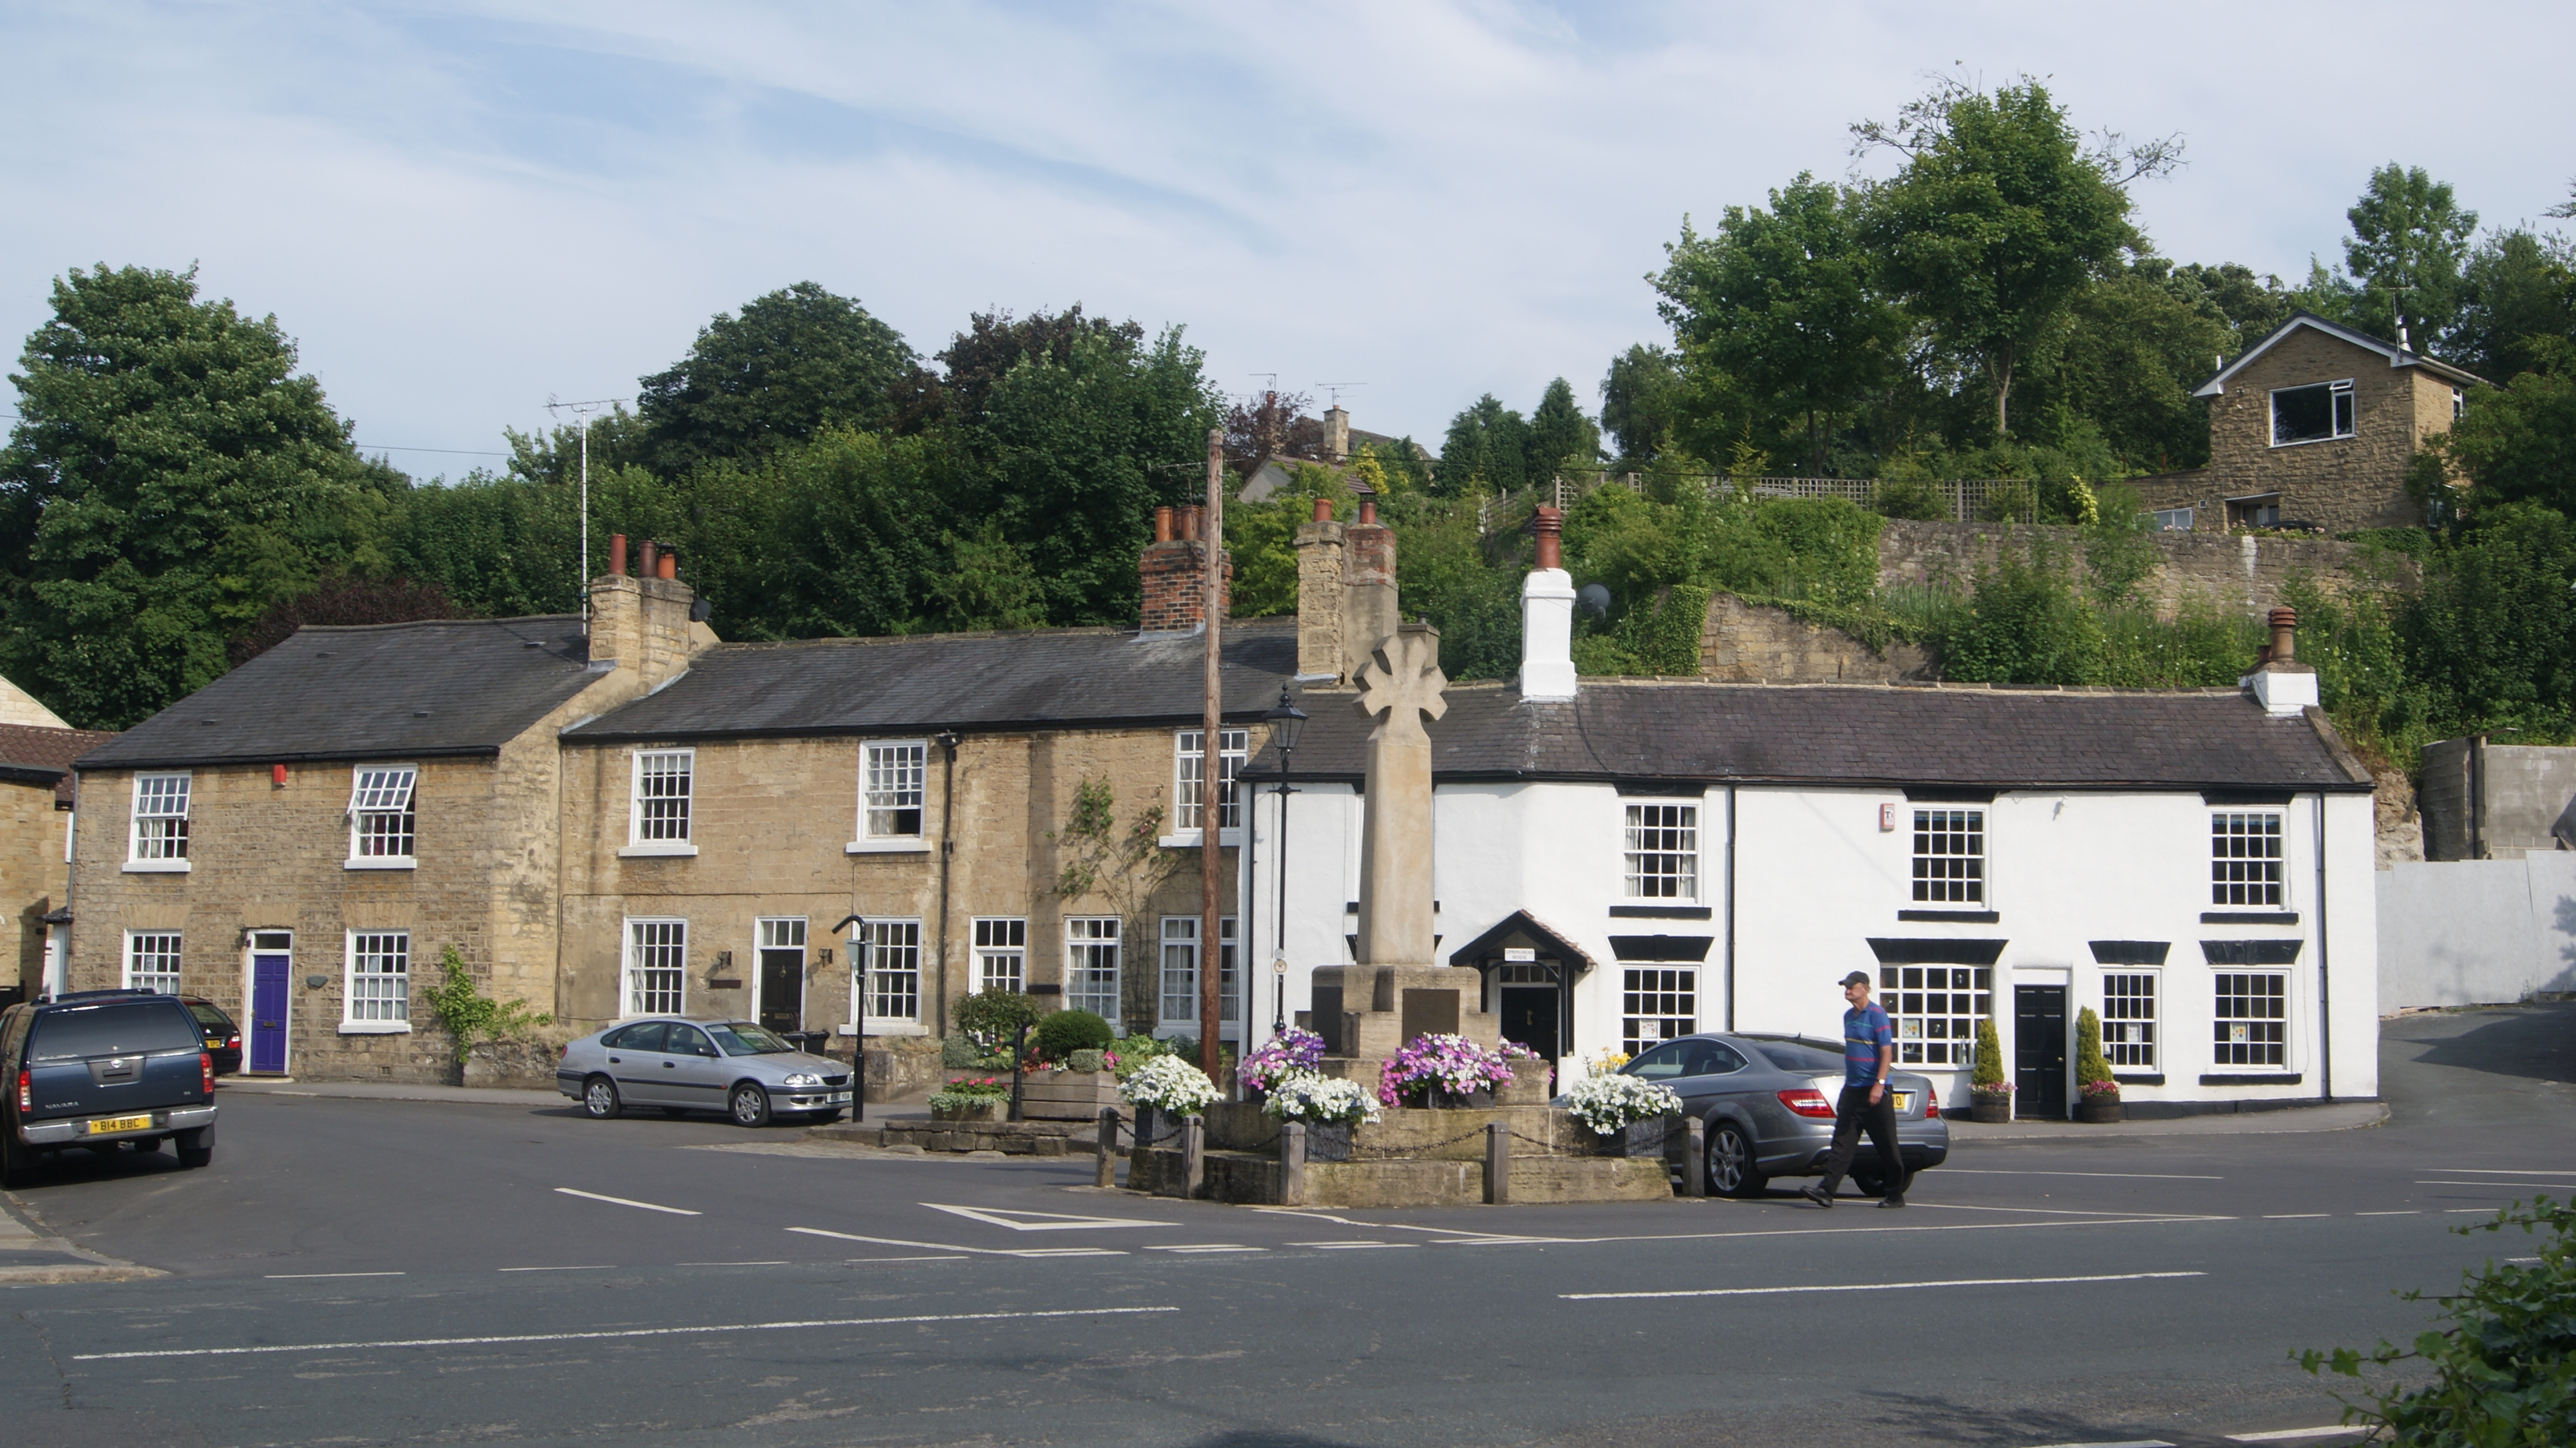 File:Square at the bottom of Town Hill, Bramham, West Yorkshire